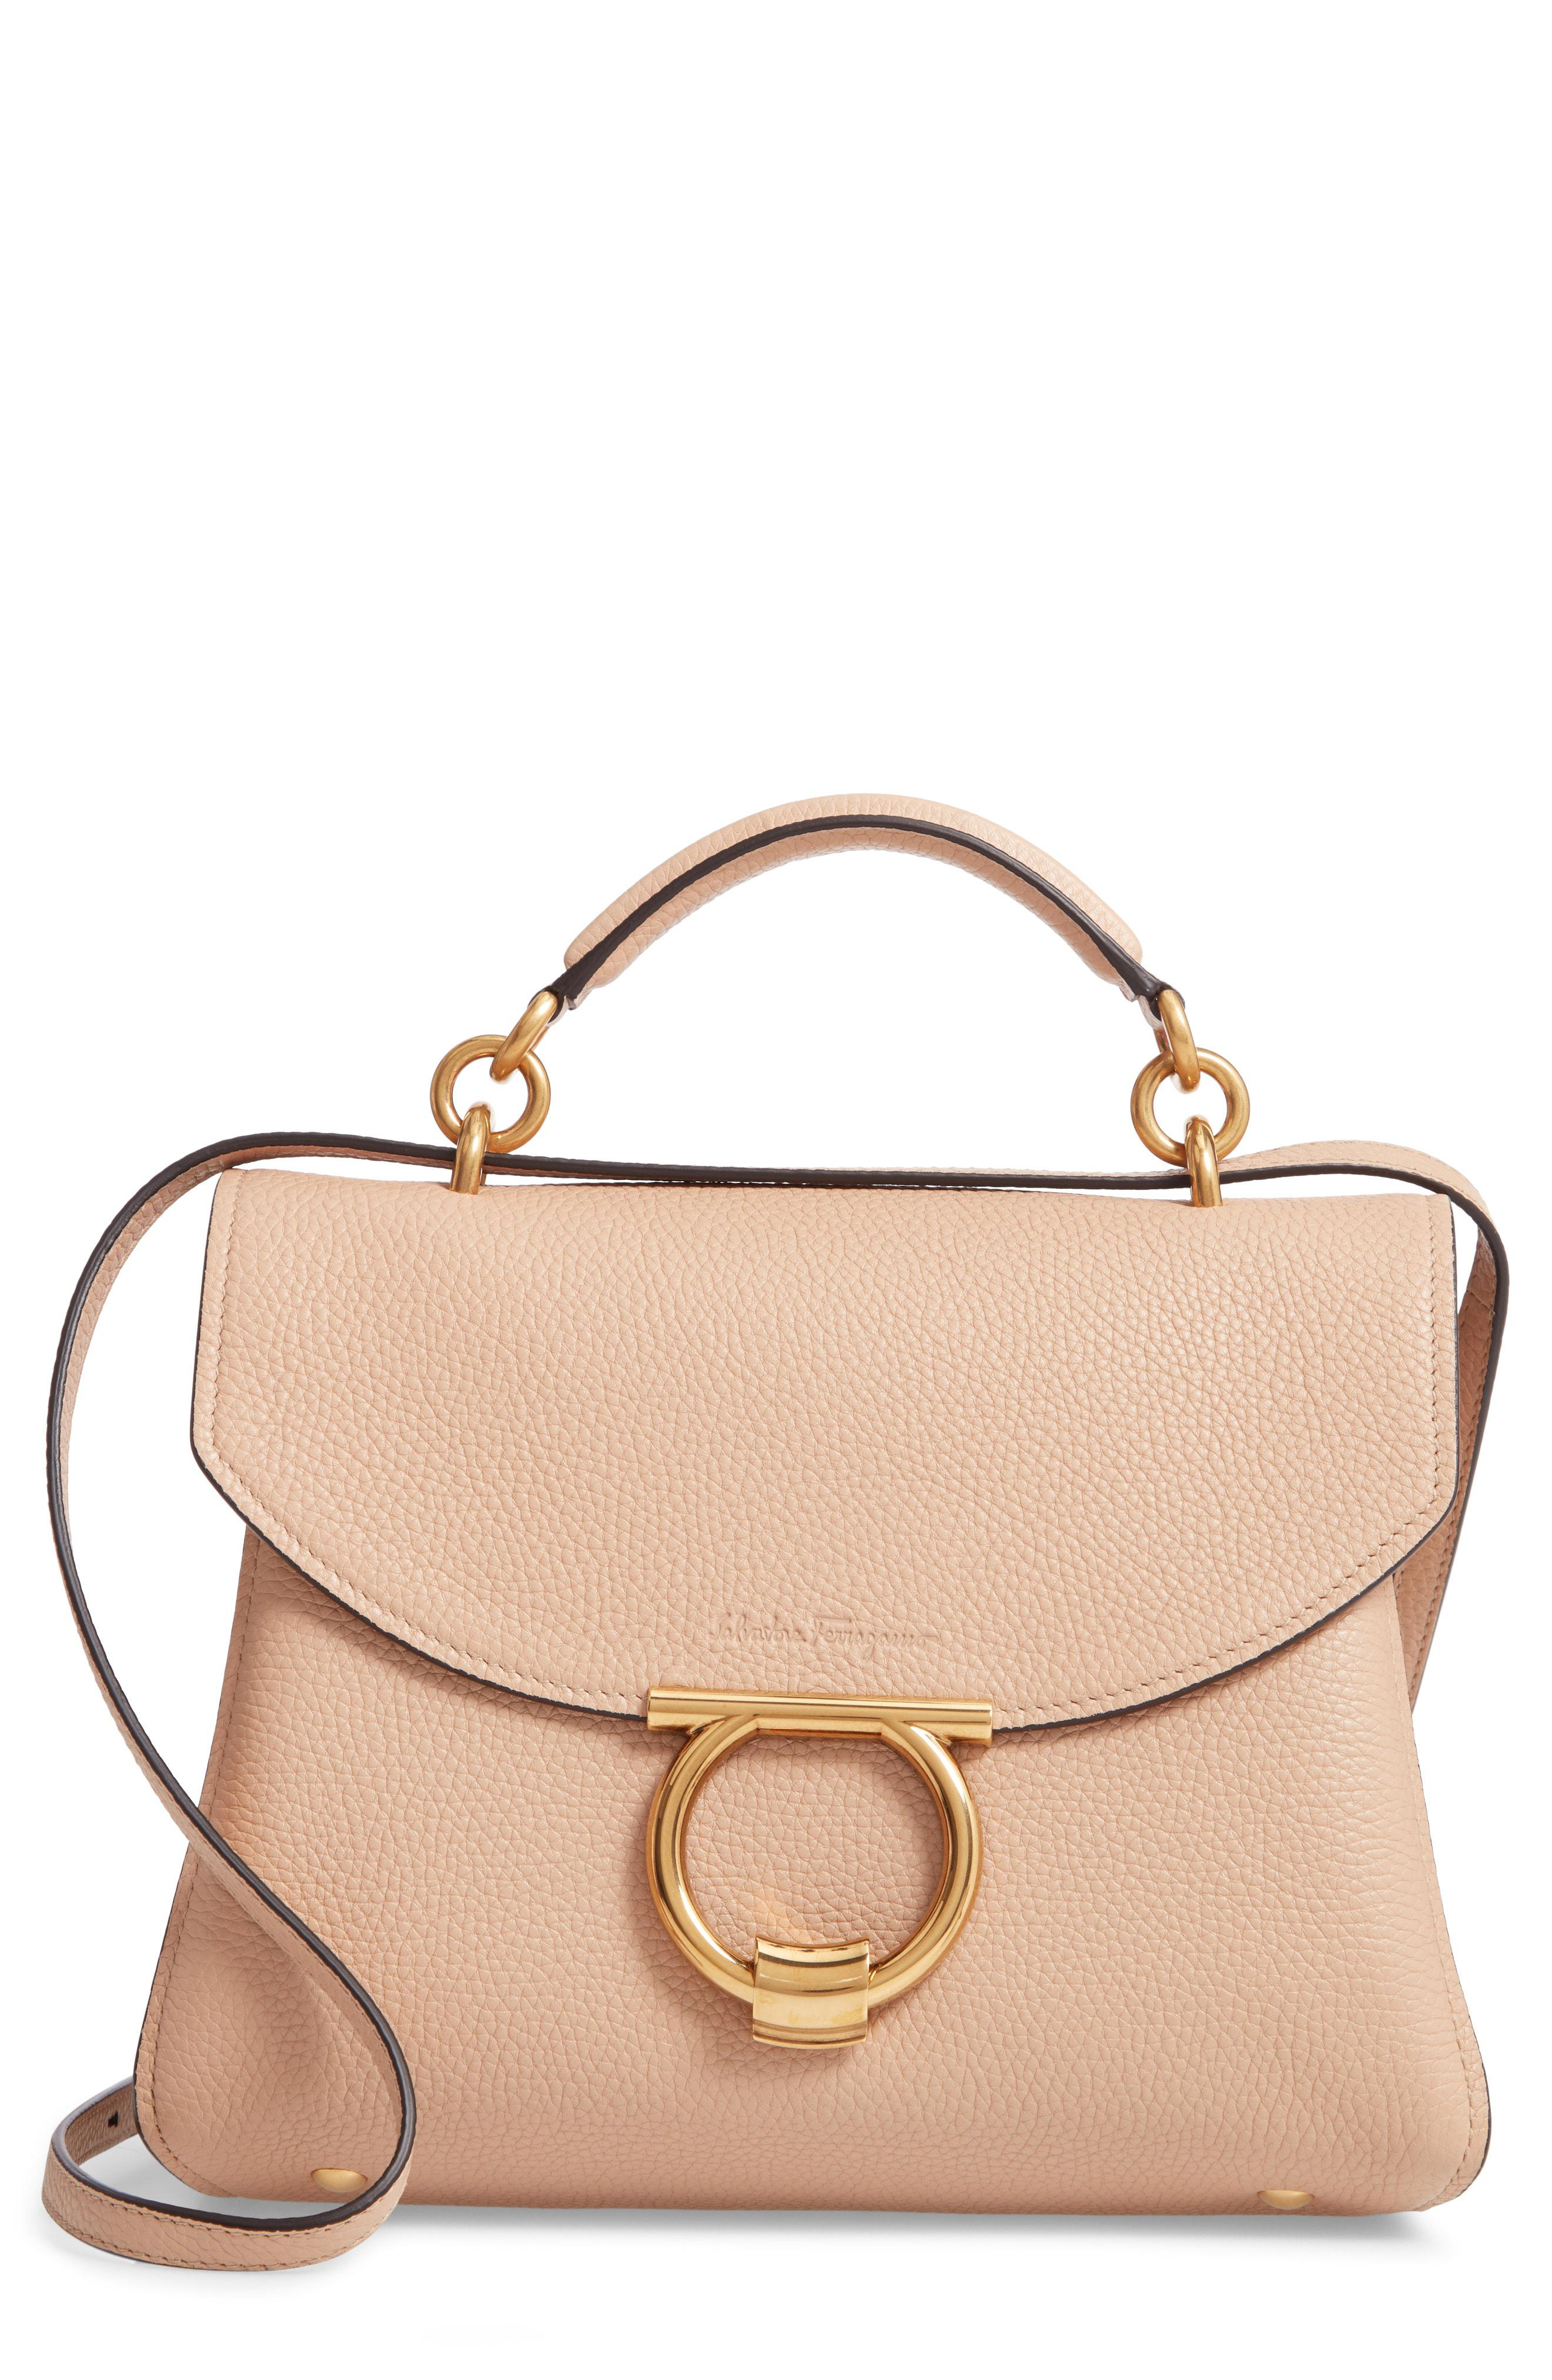 8c37278cd937 Lyst - Ferragamo Small Margot Leather Top Handle Bag in Natural